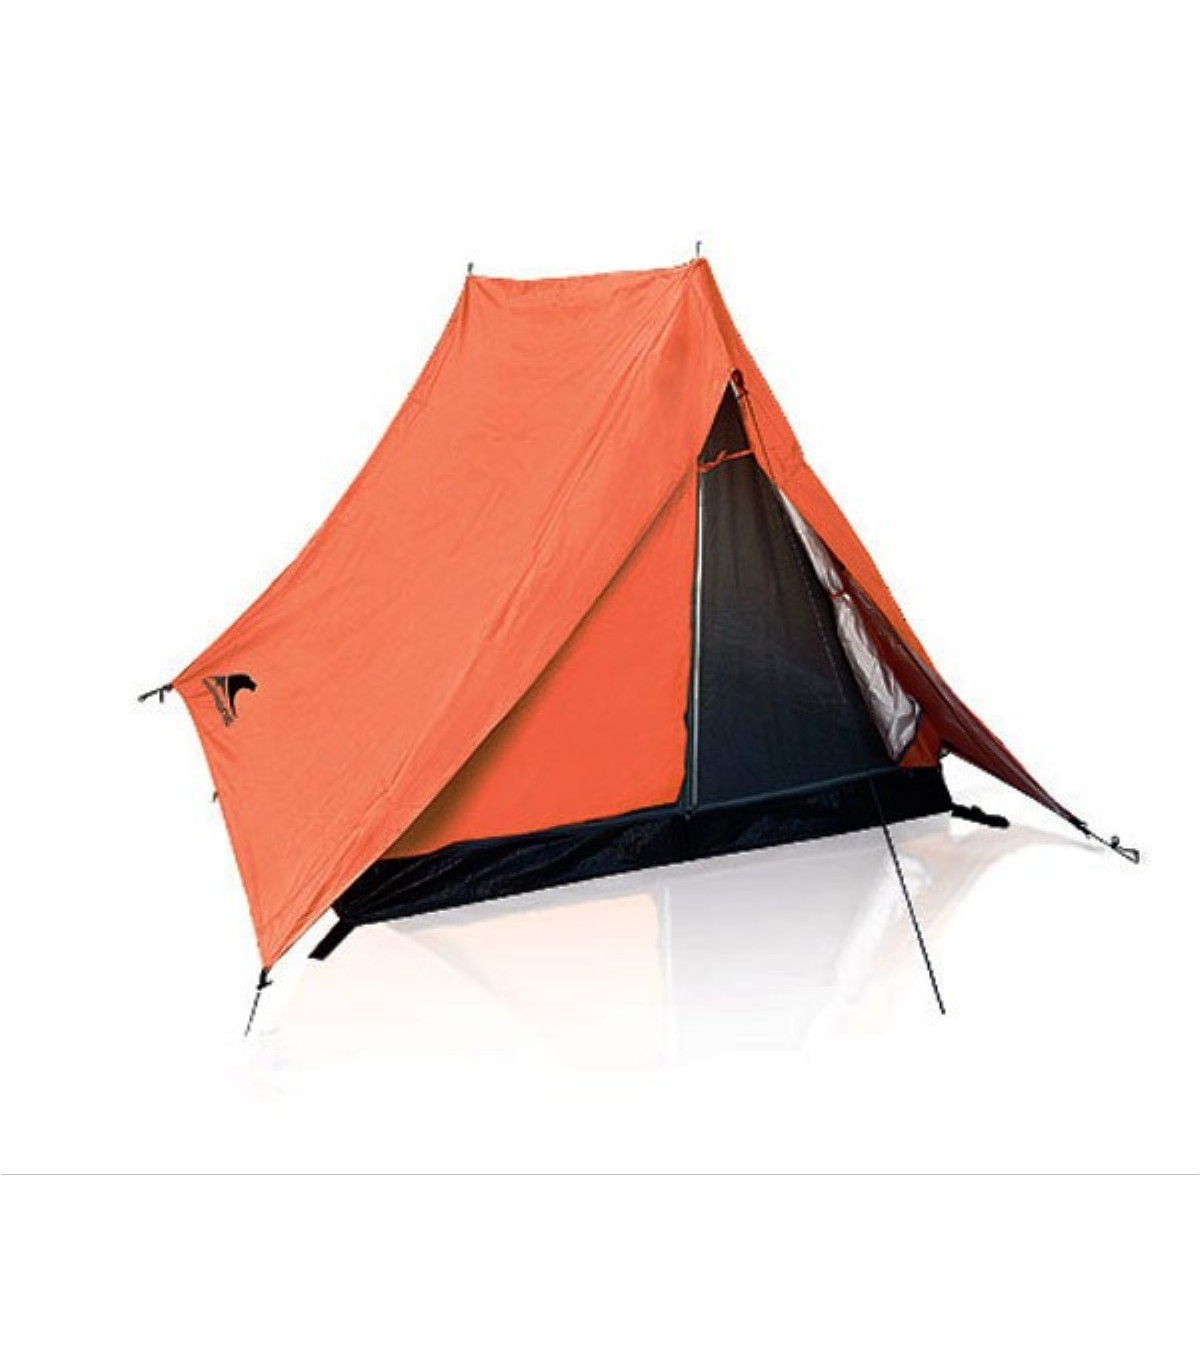 Carpa canadiense Ecology 3/4 personas - Carpa canadiense Ecology 3/4 P